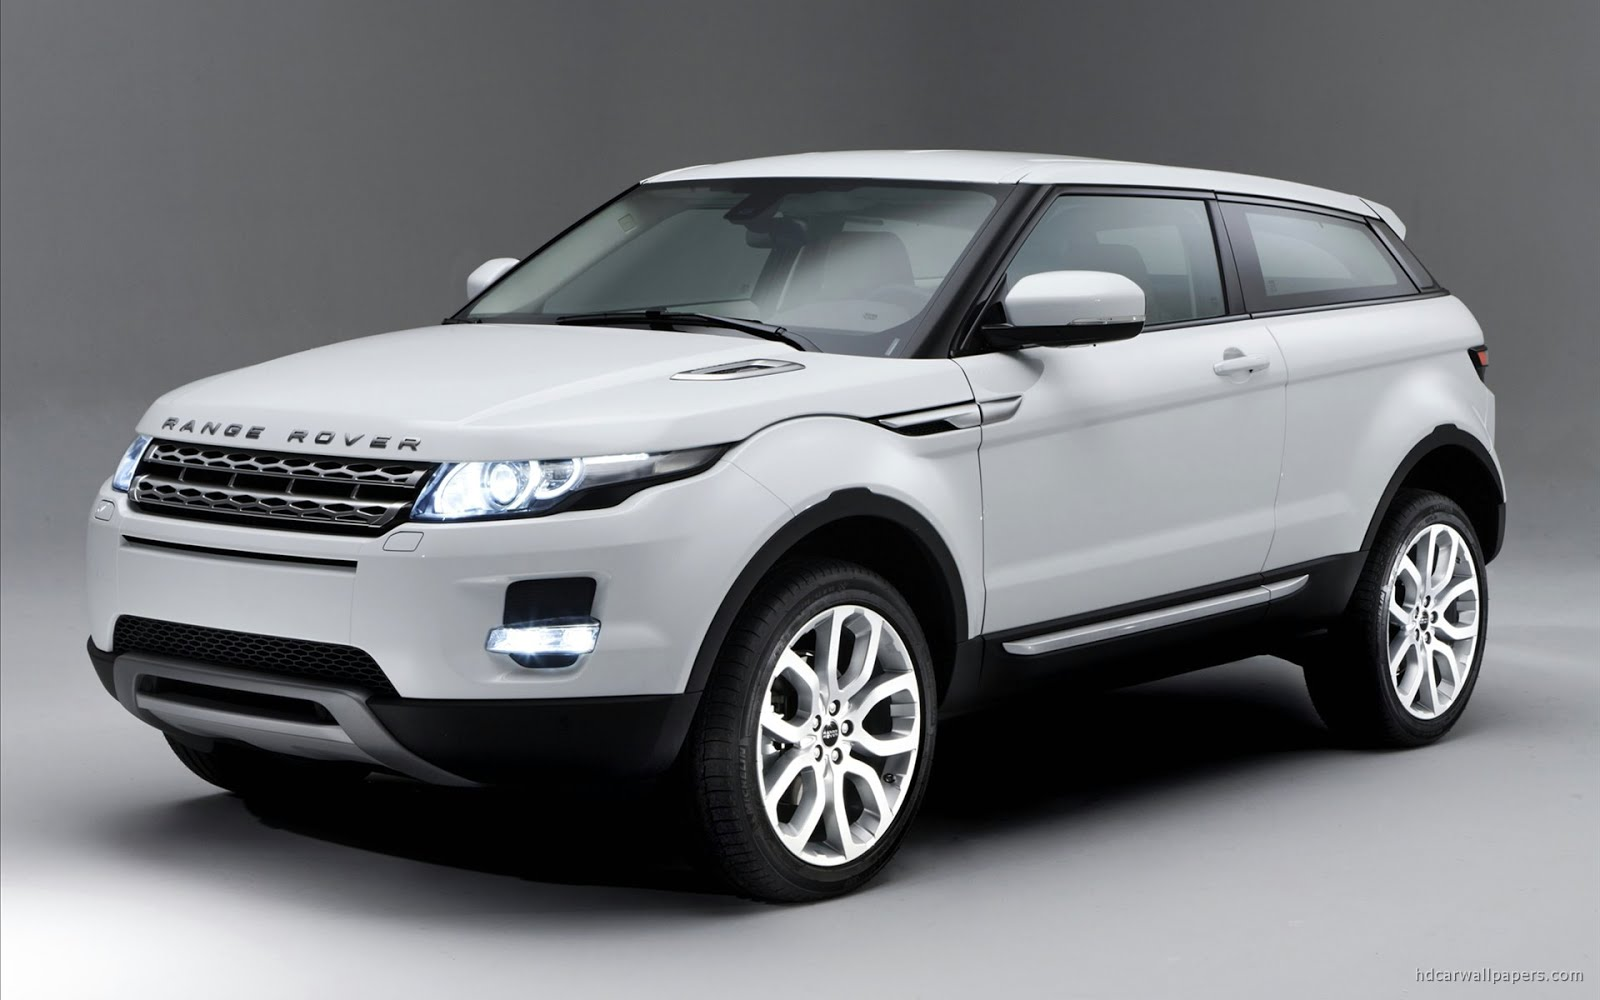 Range Rover Download Free Car Wallpaper Free Download Cars Wallpapers